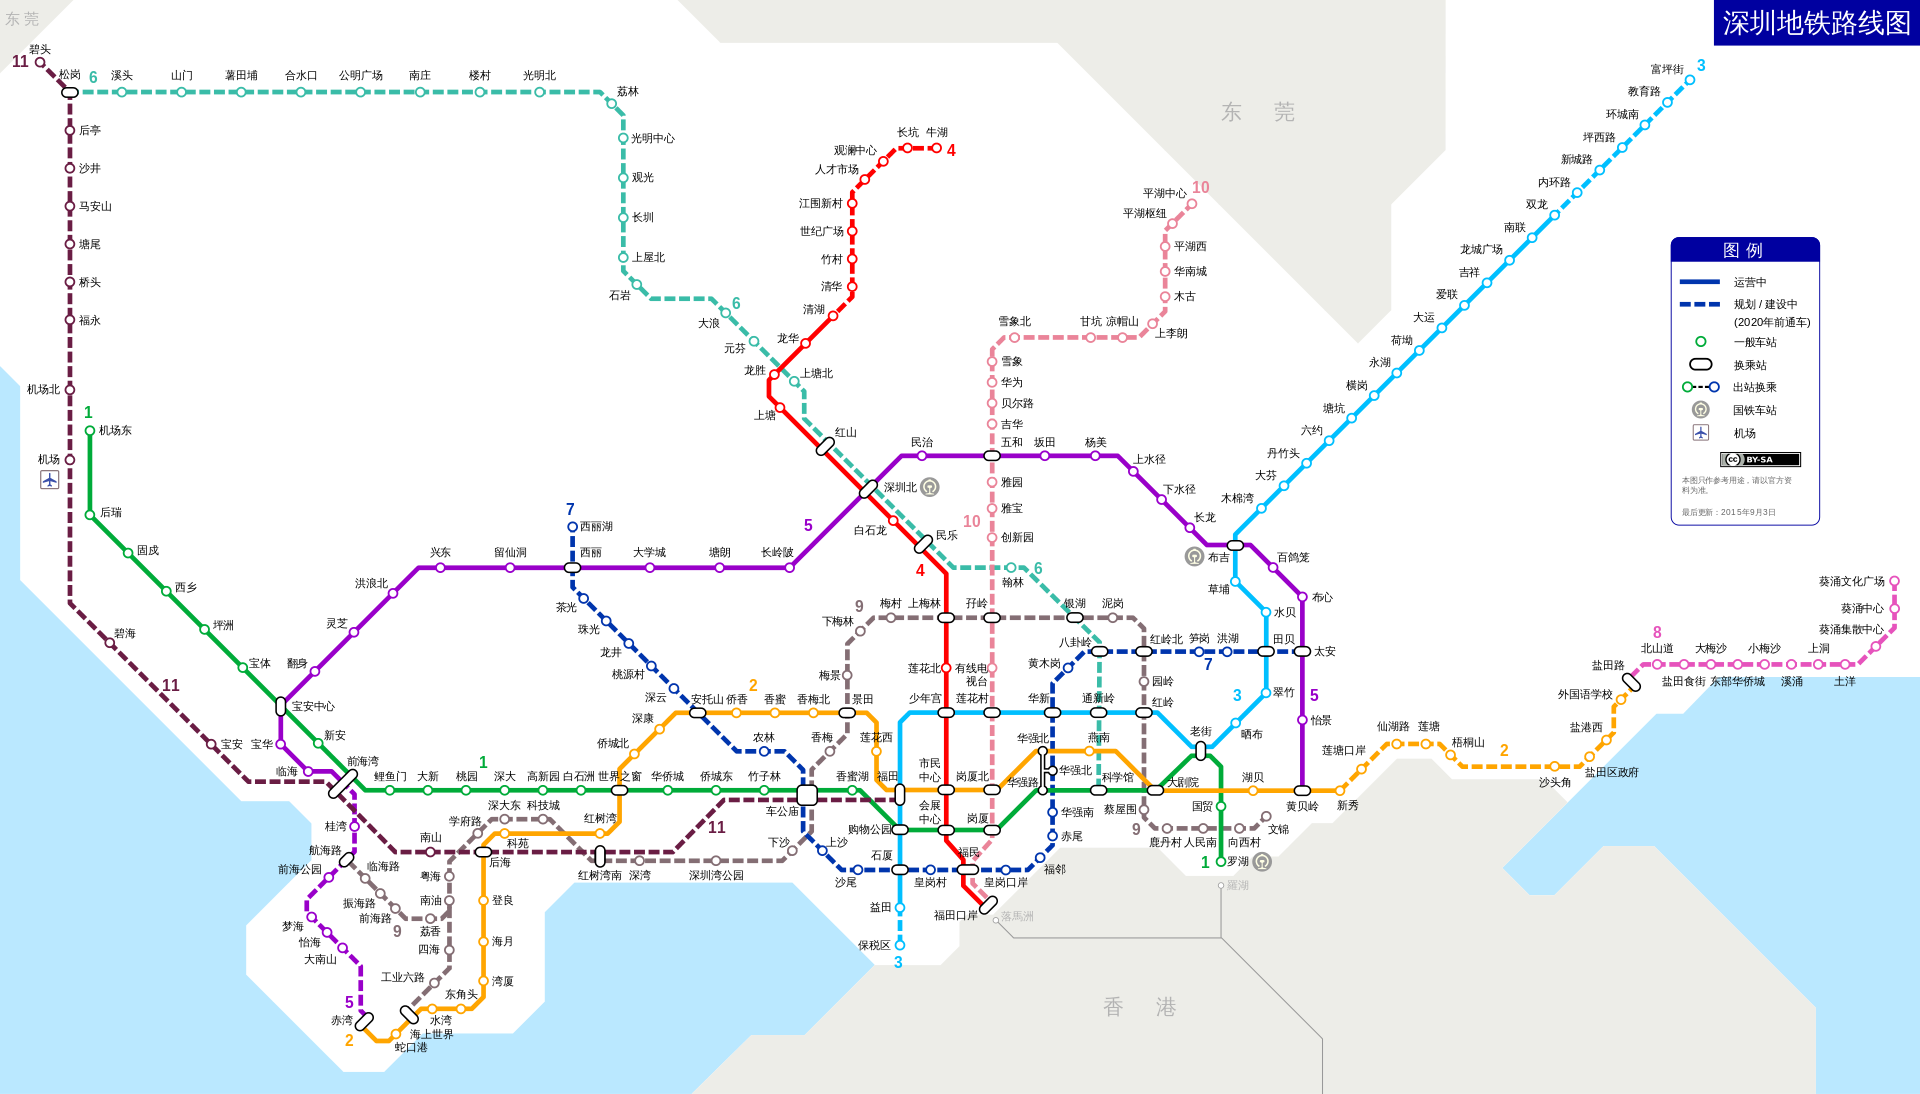 Shenzhen Metro Line 11 is China's Newest and Fastest ... on montreal metro, yantai metro map, tianjin metro, xiamen metro map, dalian metro map, kabul metro map, zibo metro map, chengdu metro, hefei metro map, city metro map, tokyo metro map, guilin metro map, nanjing metro, edmonton metro map, hangzhou metro, jakarta metro map, guangzhou metro, dhaka metro map, ningbo metro map, shenzhen bao'an international airport, island line, shenzhen railway station, moscow metro, chongqing metro, walt disney world monorail system map, shanghai metro, changsha metro map, bucharest metro, guangzhou metro map, hong kong metro map, dalian metro, shanghai metro map, brussels metro, santiago metro, beijing subway, nanchang metro map, wuhan metro, shantou metro map, window of the world,